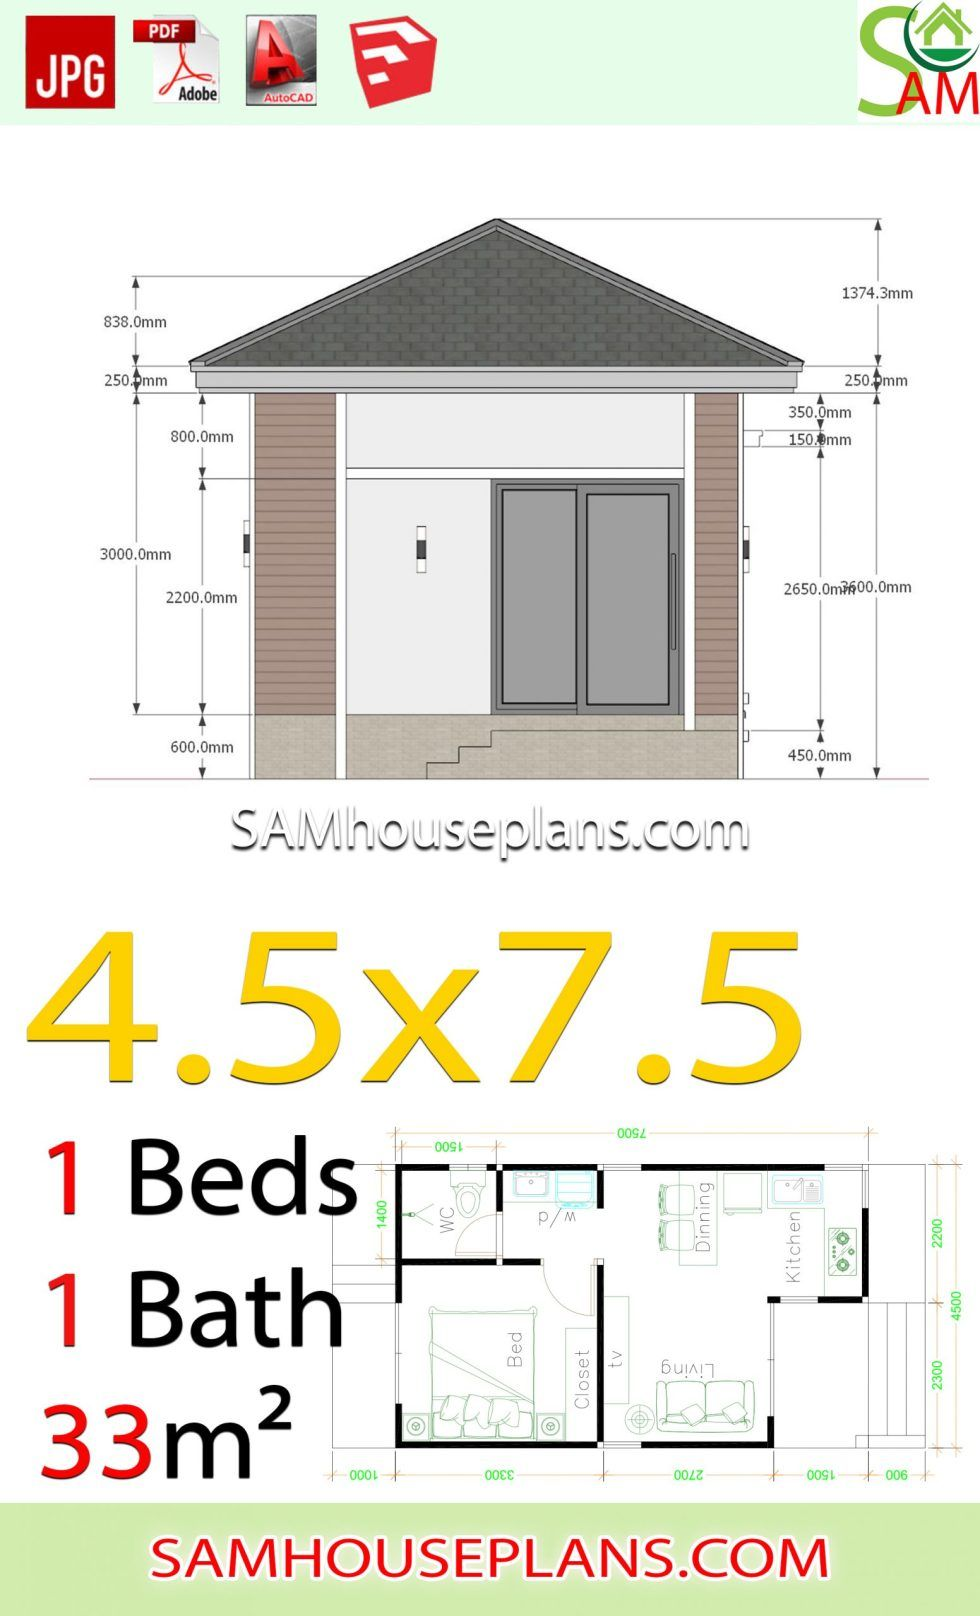 Small House Plans 4 5x7 5 With One Bedroom Hip Roof Sam House Plans In 2020 Small House Plans House Plans Hip Roof